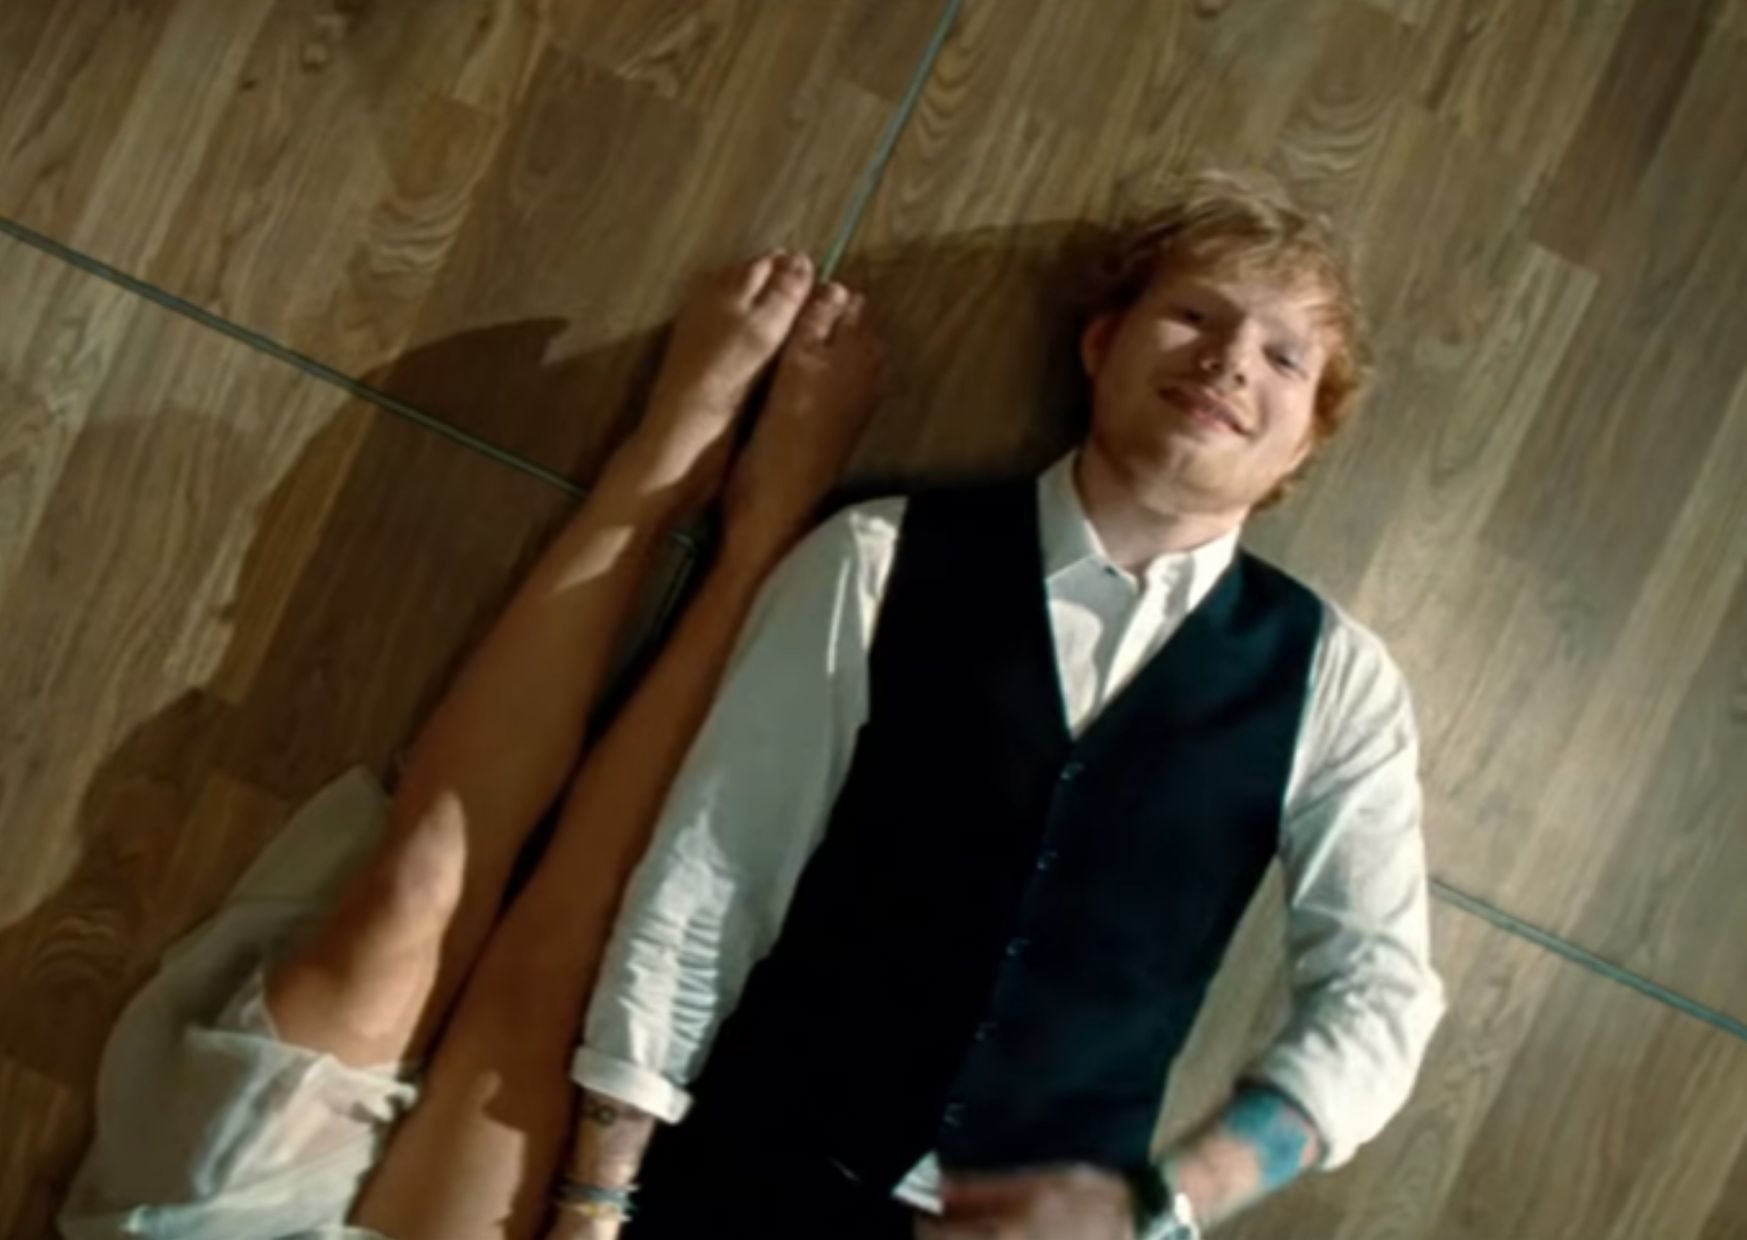 Lirik Lagu Thinking Out Loud - Ed Sheeran